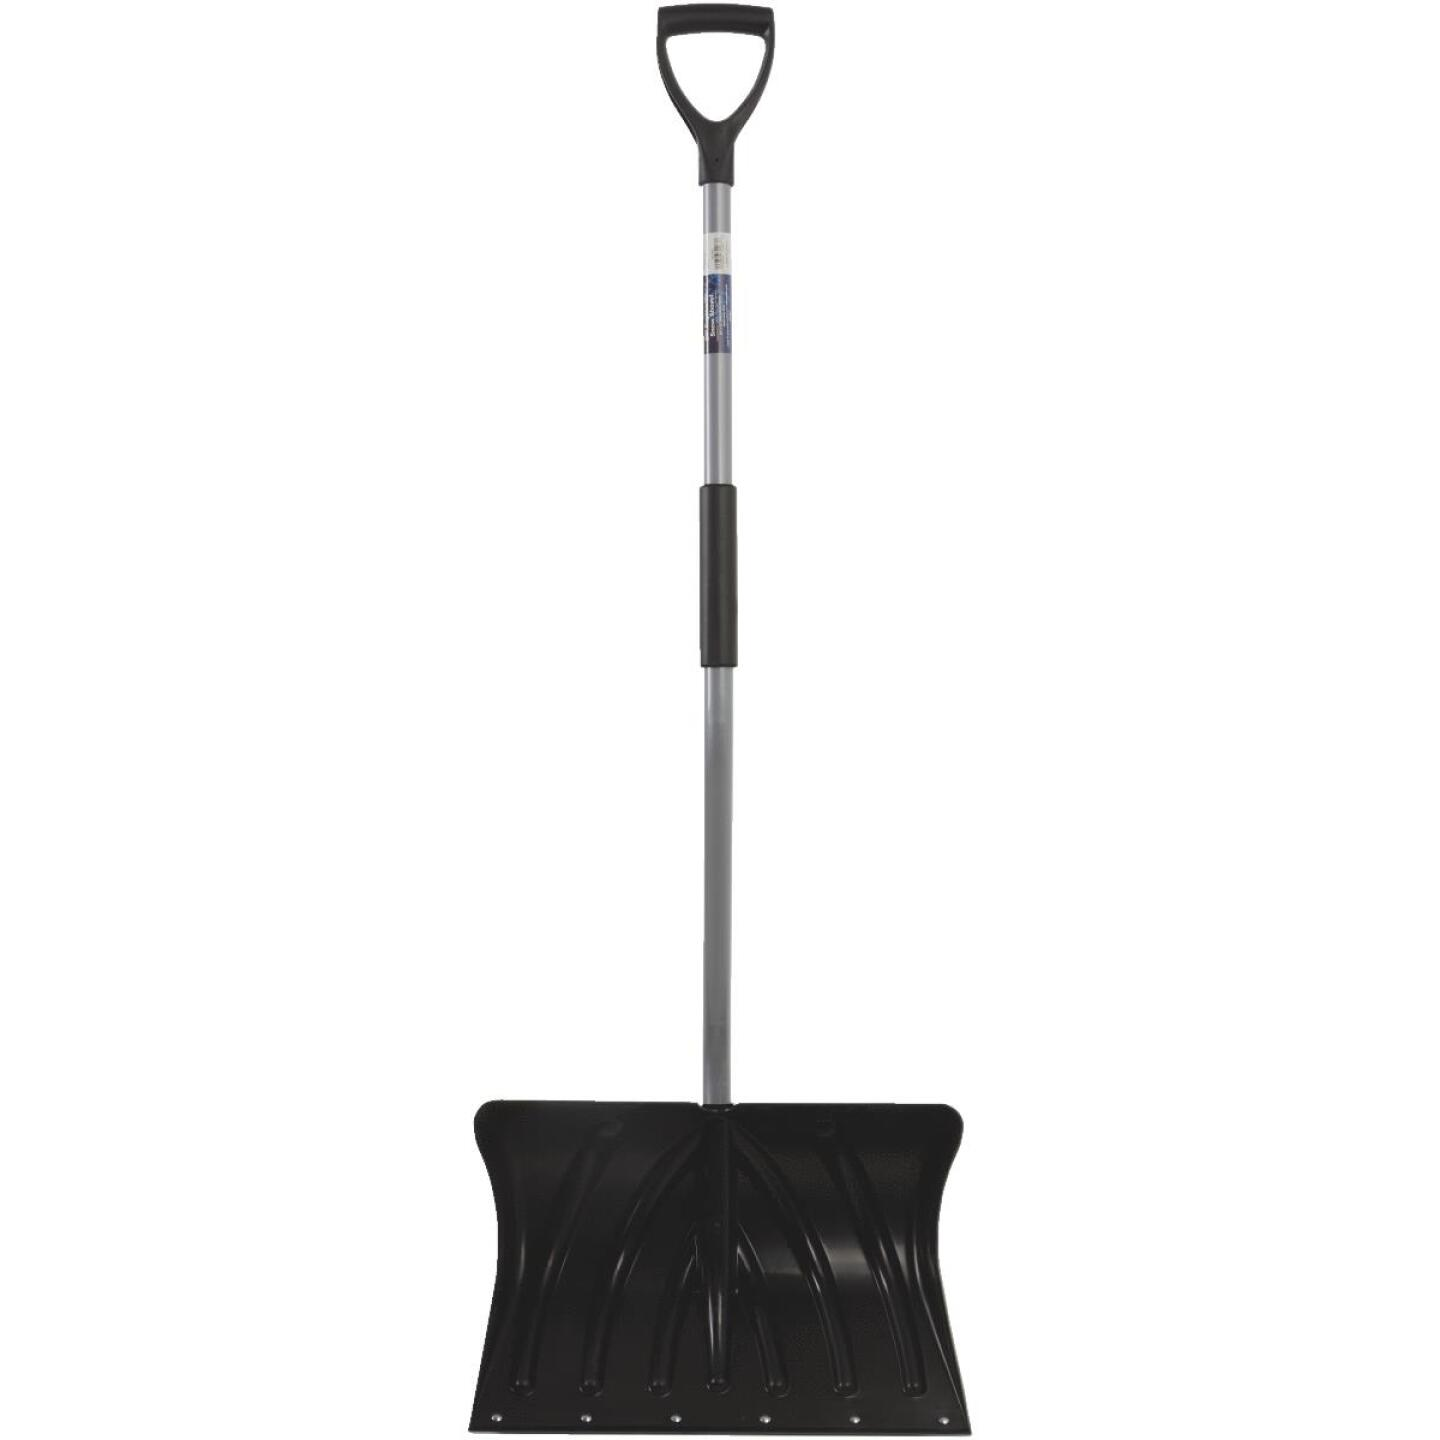 20 In. Poly Ergo Snow Shovel with 45 In. Steel Handle Image 3